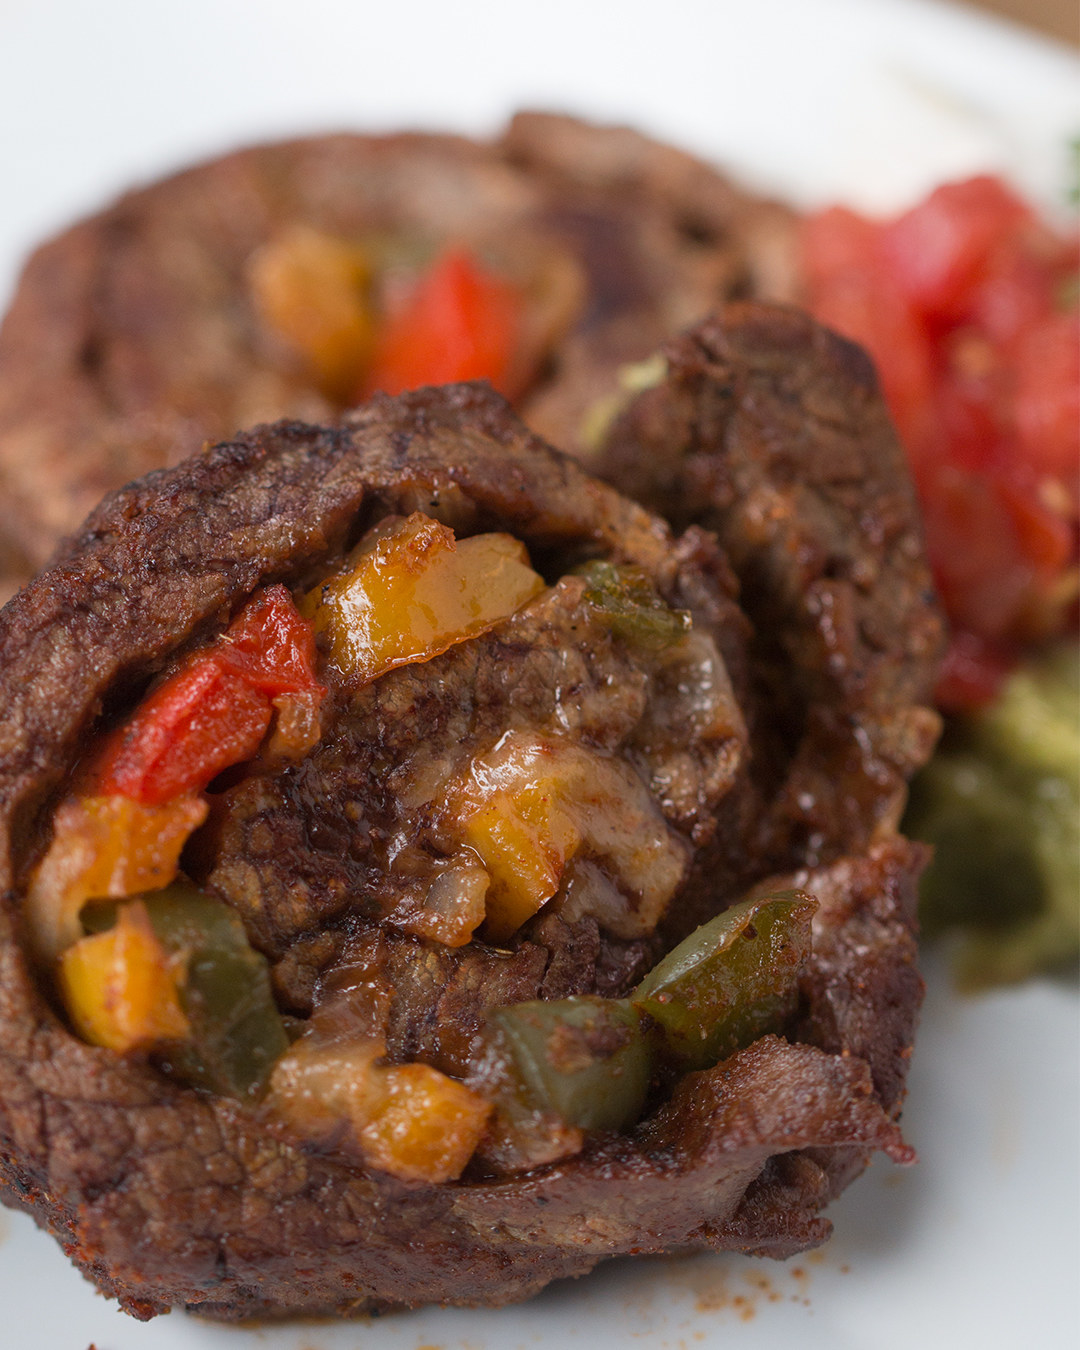 These Steak Fajita Rolls Are Gonna Make Your Mouth Water